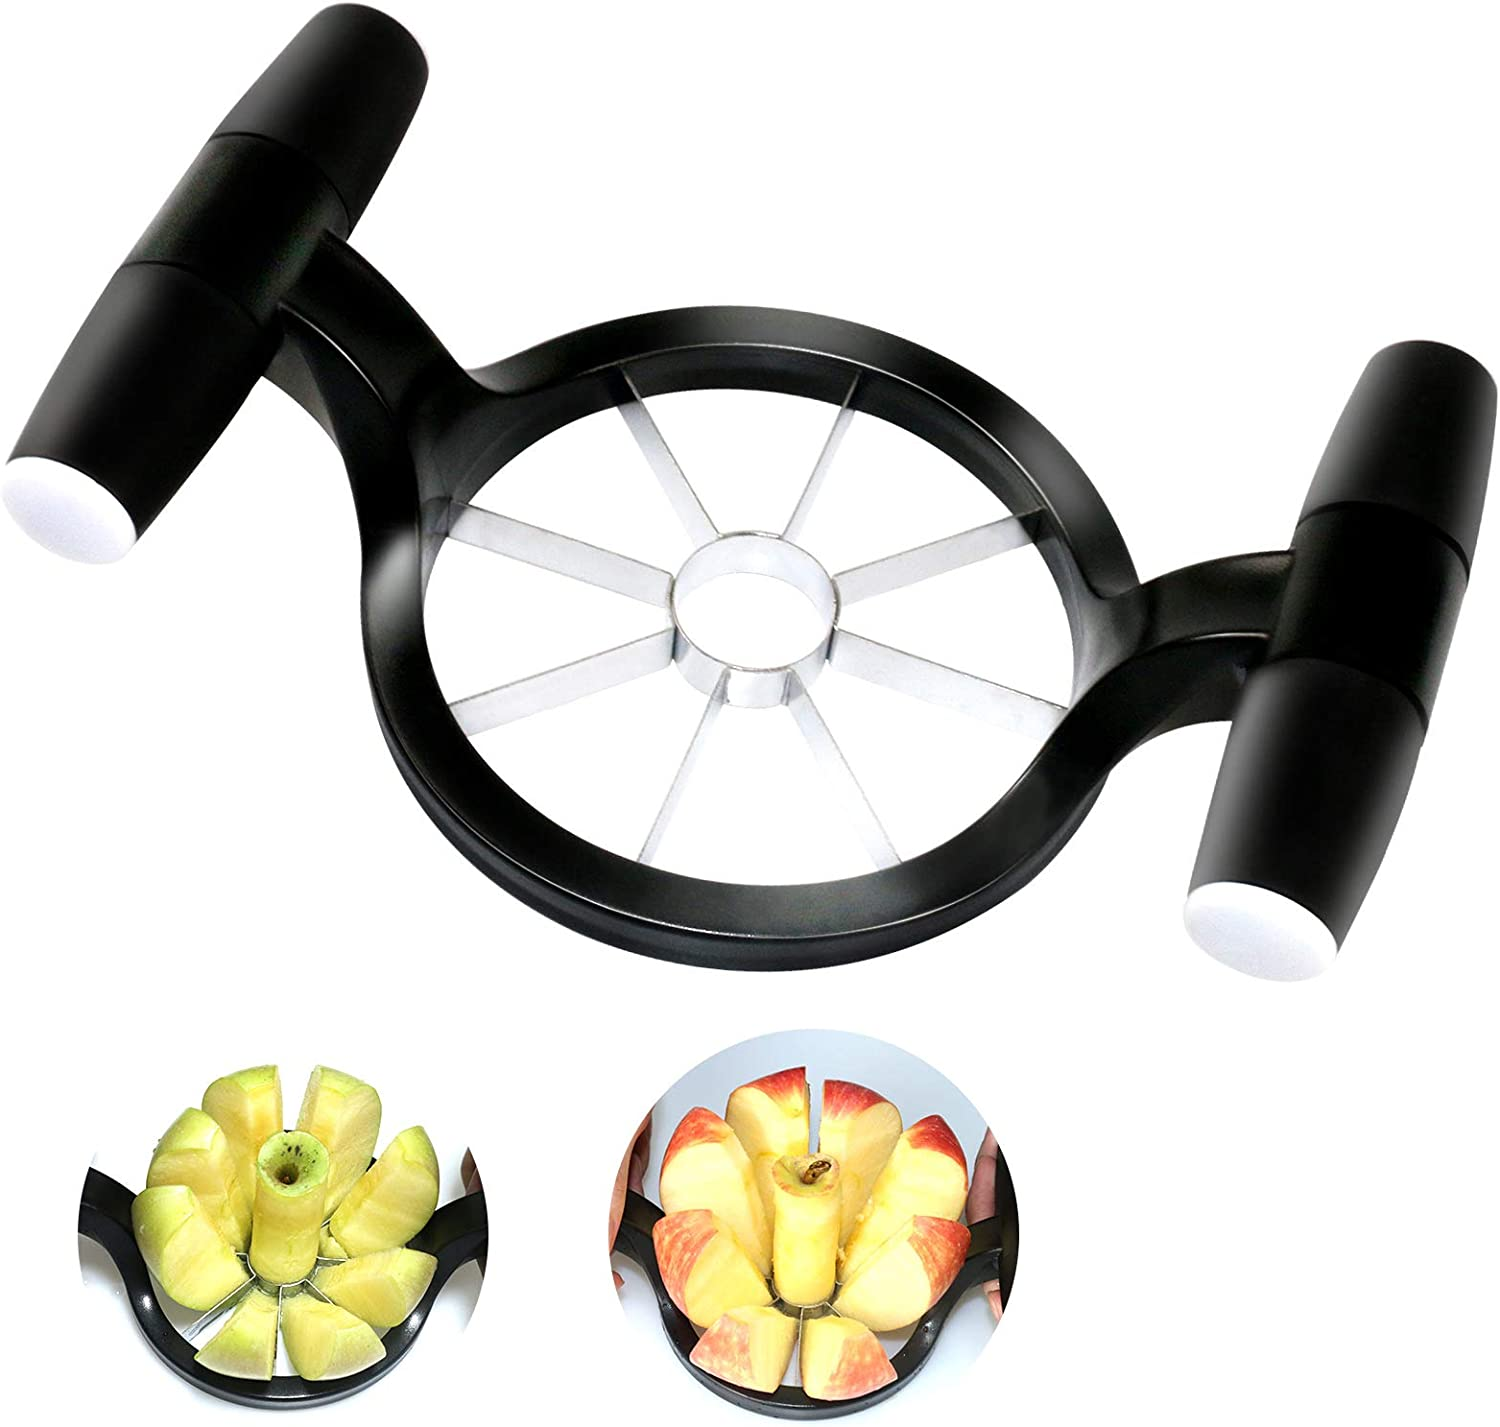 LIANGKEN Apple Slicer and Corer Tool, Professional Apple Cutter 8 Slices with Stainless Steel Blade, Fruit Slicer with Comfortable Handle,Strong and Sturdy